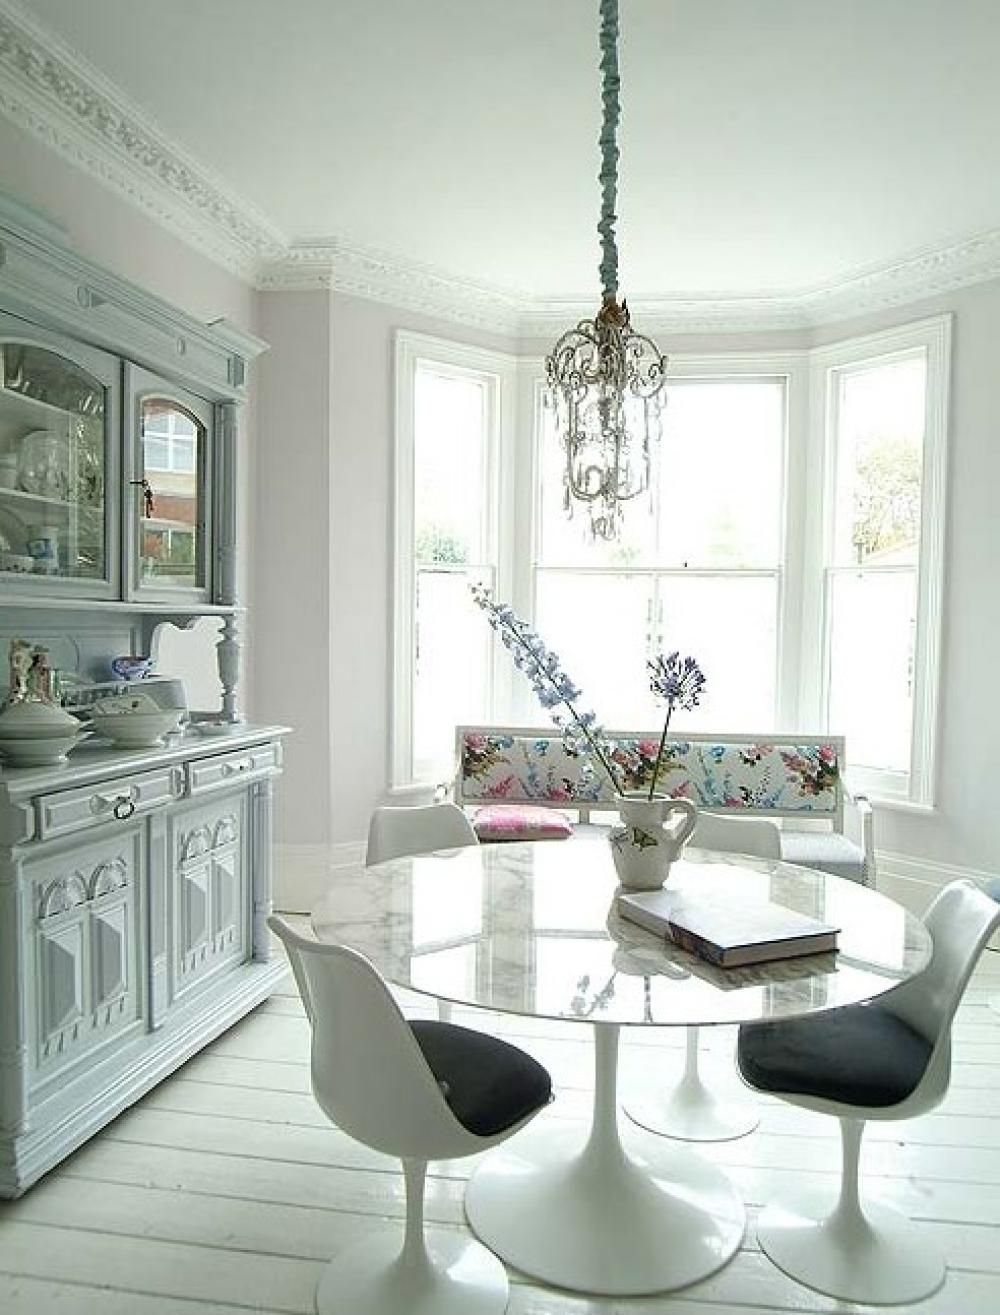 Breakfast Table In Living Room With Classic Hanging Lamp Decoration ...